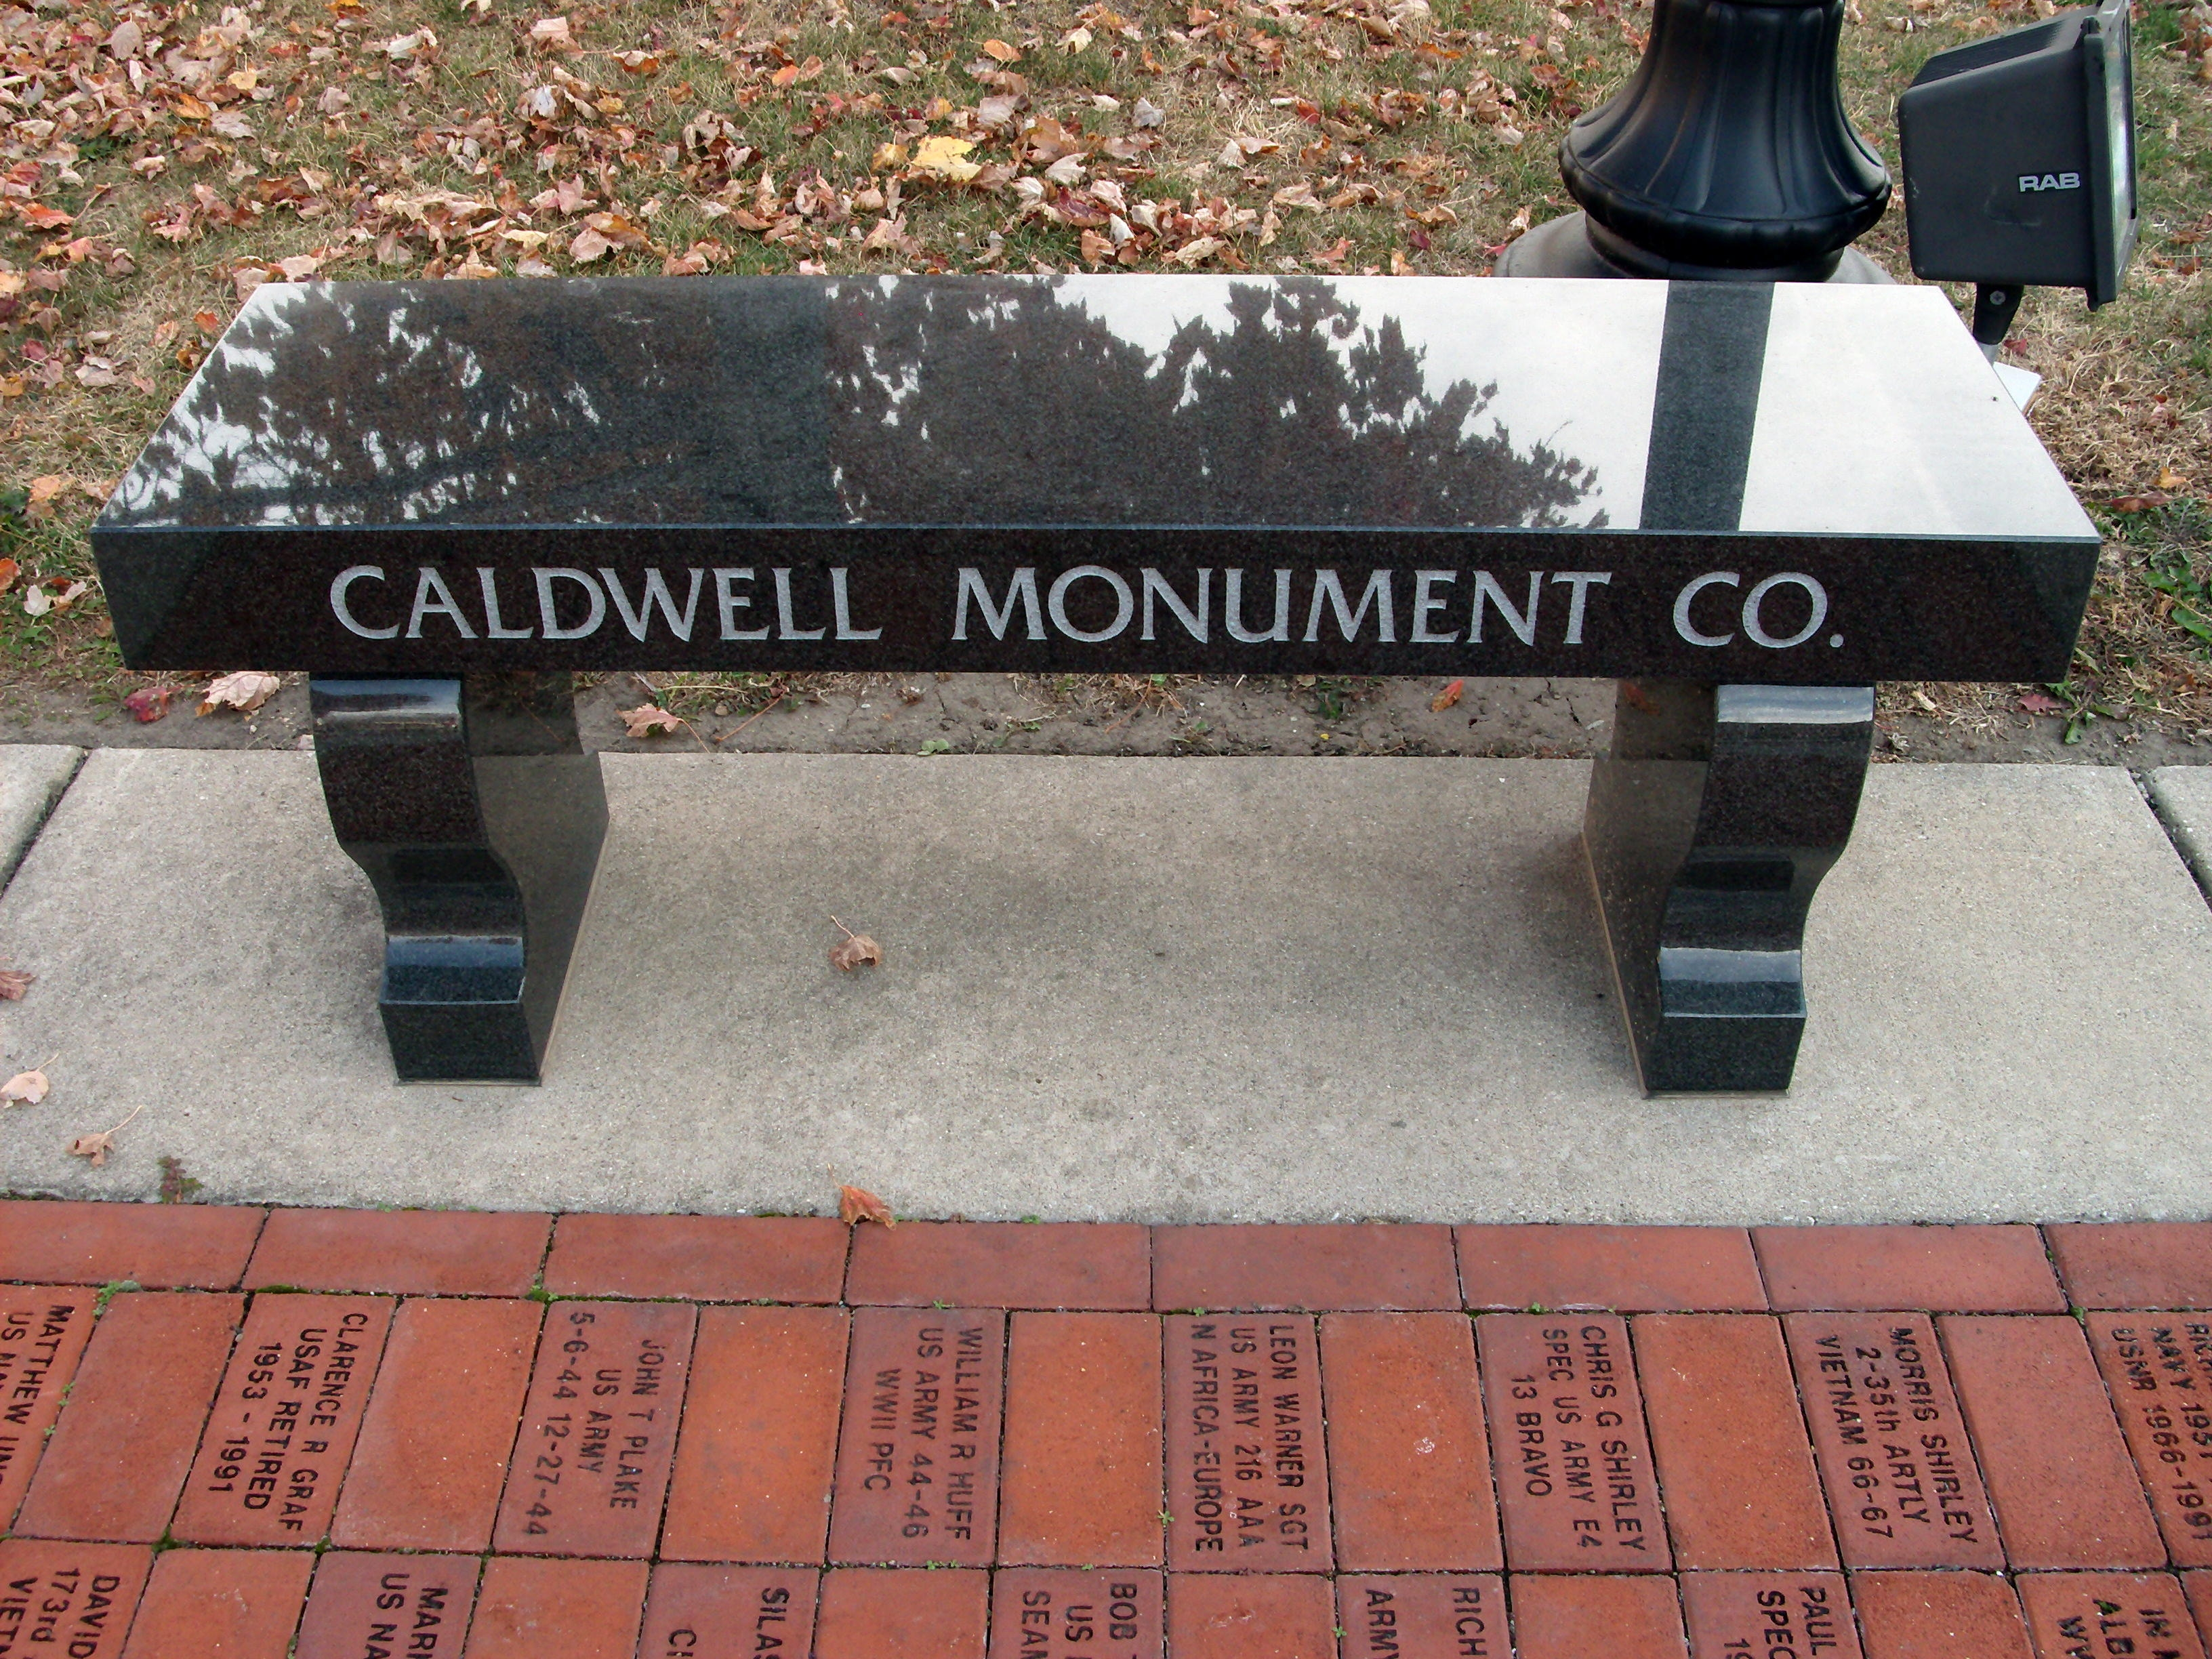 Caldwell Monument Co. (Memorial Bench)